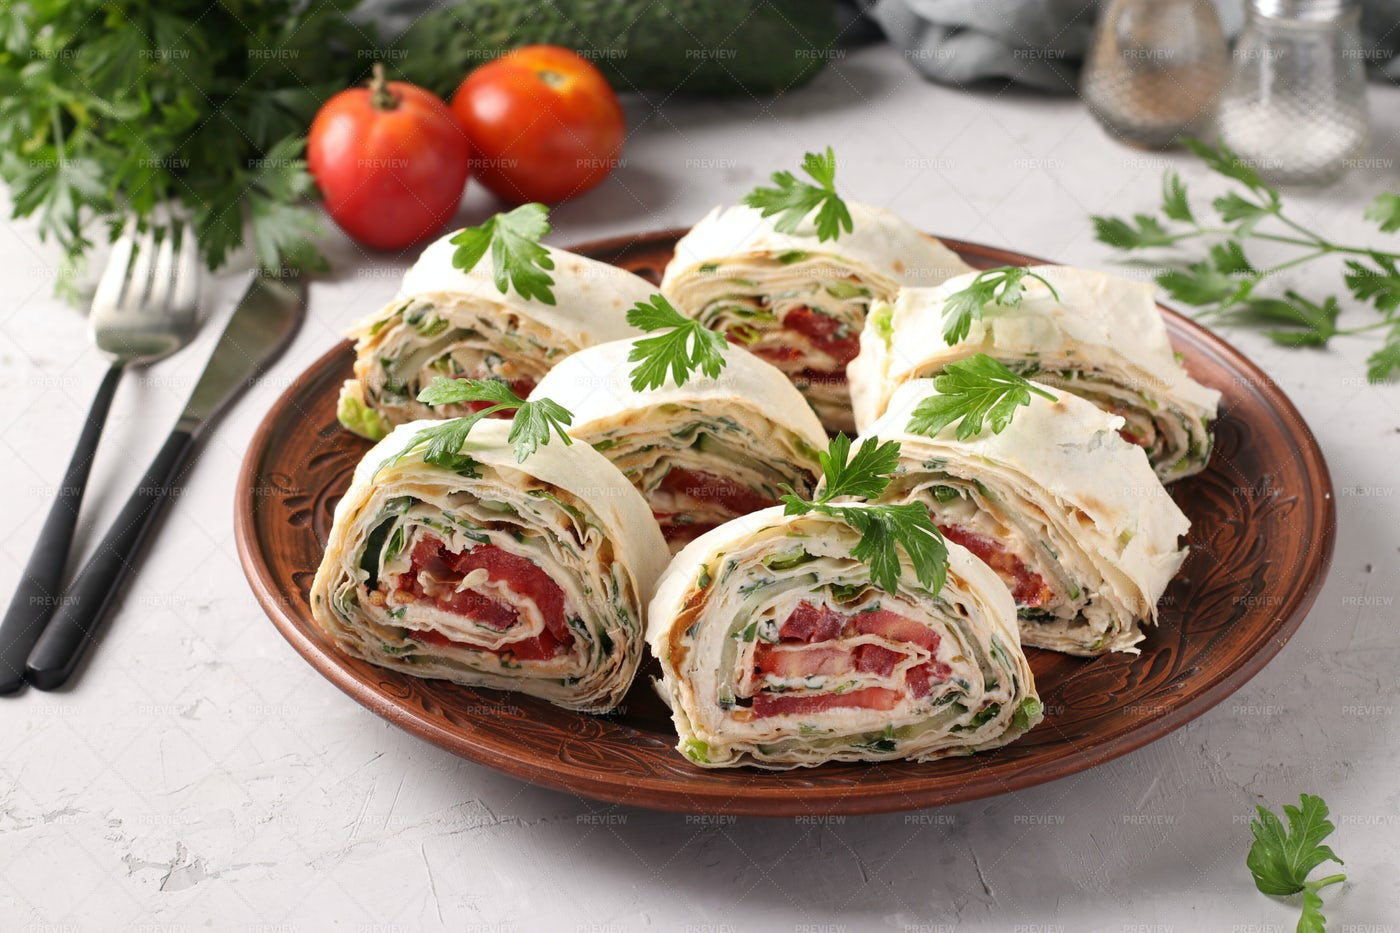 Lavash Roll With Vegetables: Stock Photos